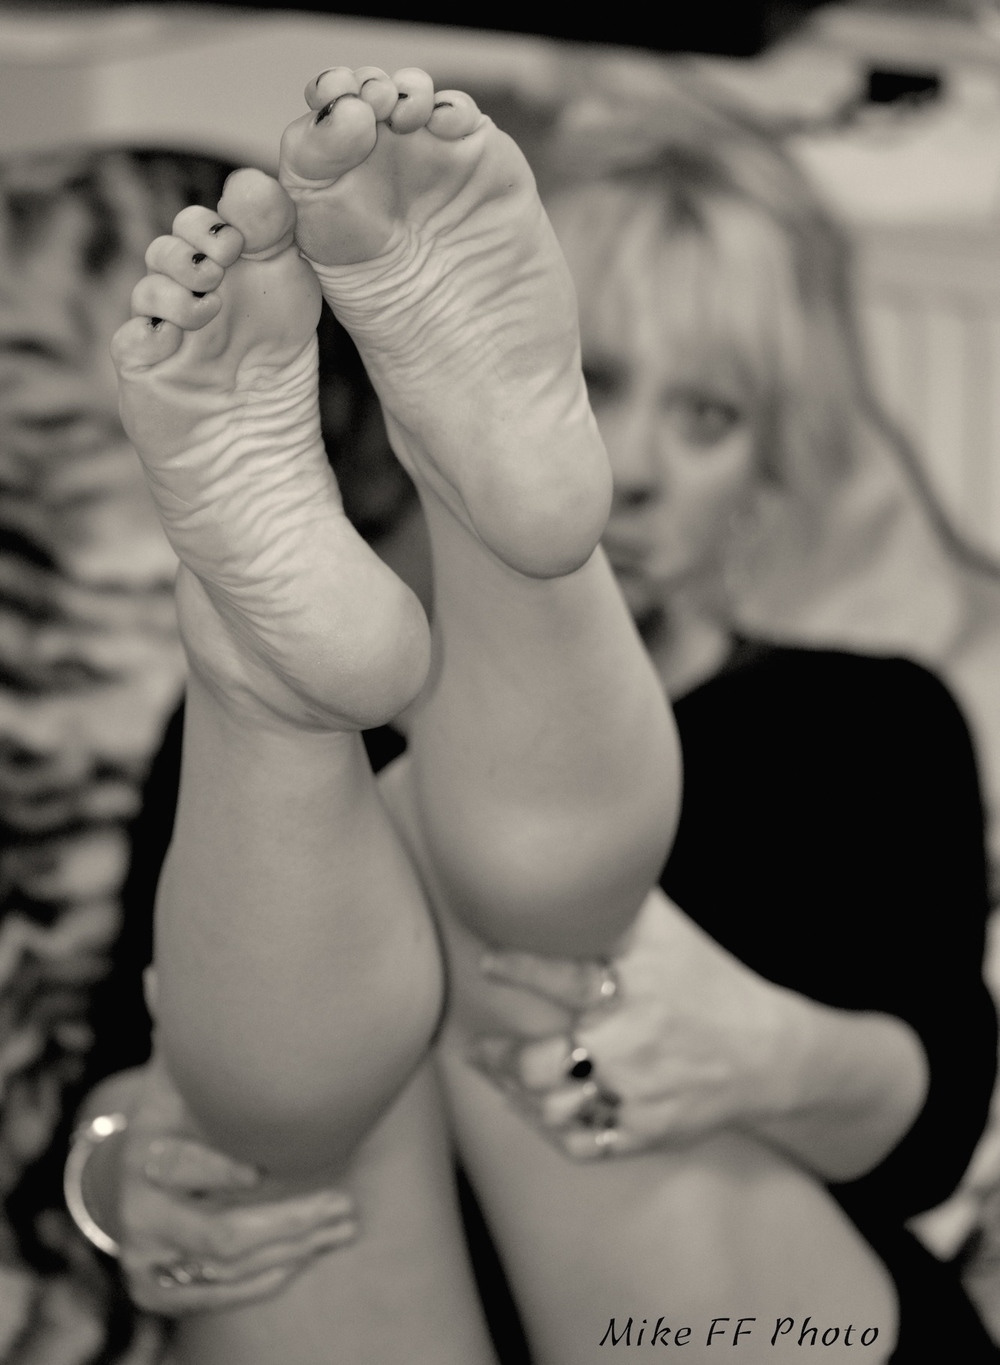 Legs-bare-foot-fetish-London-Mistress